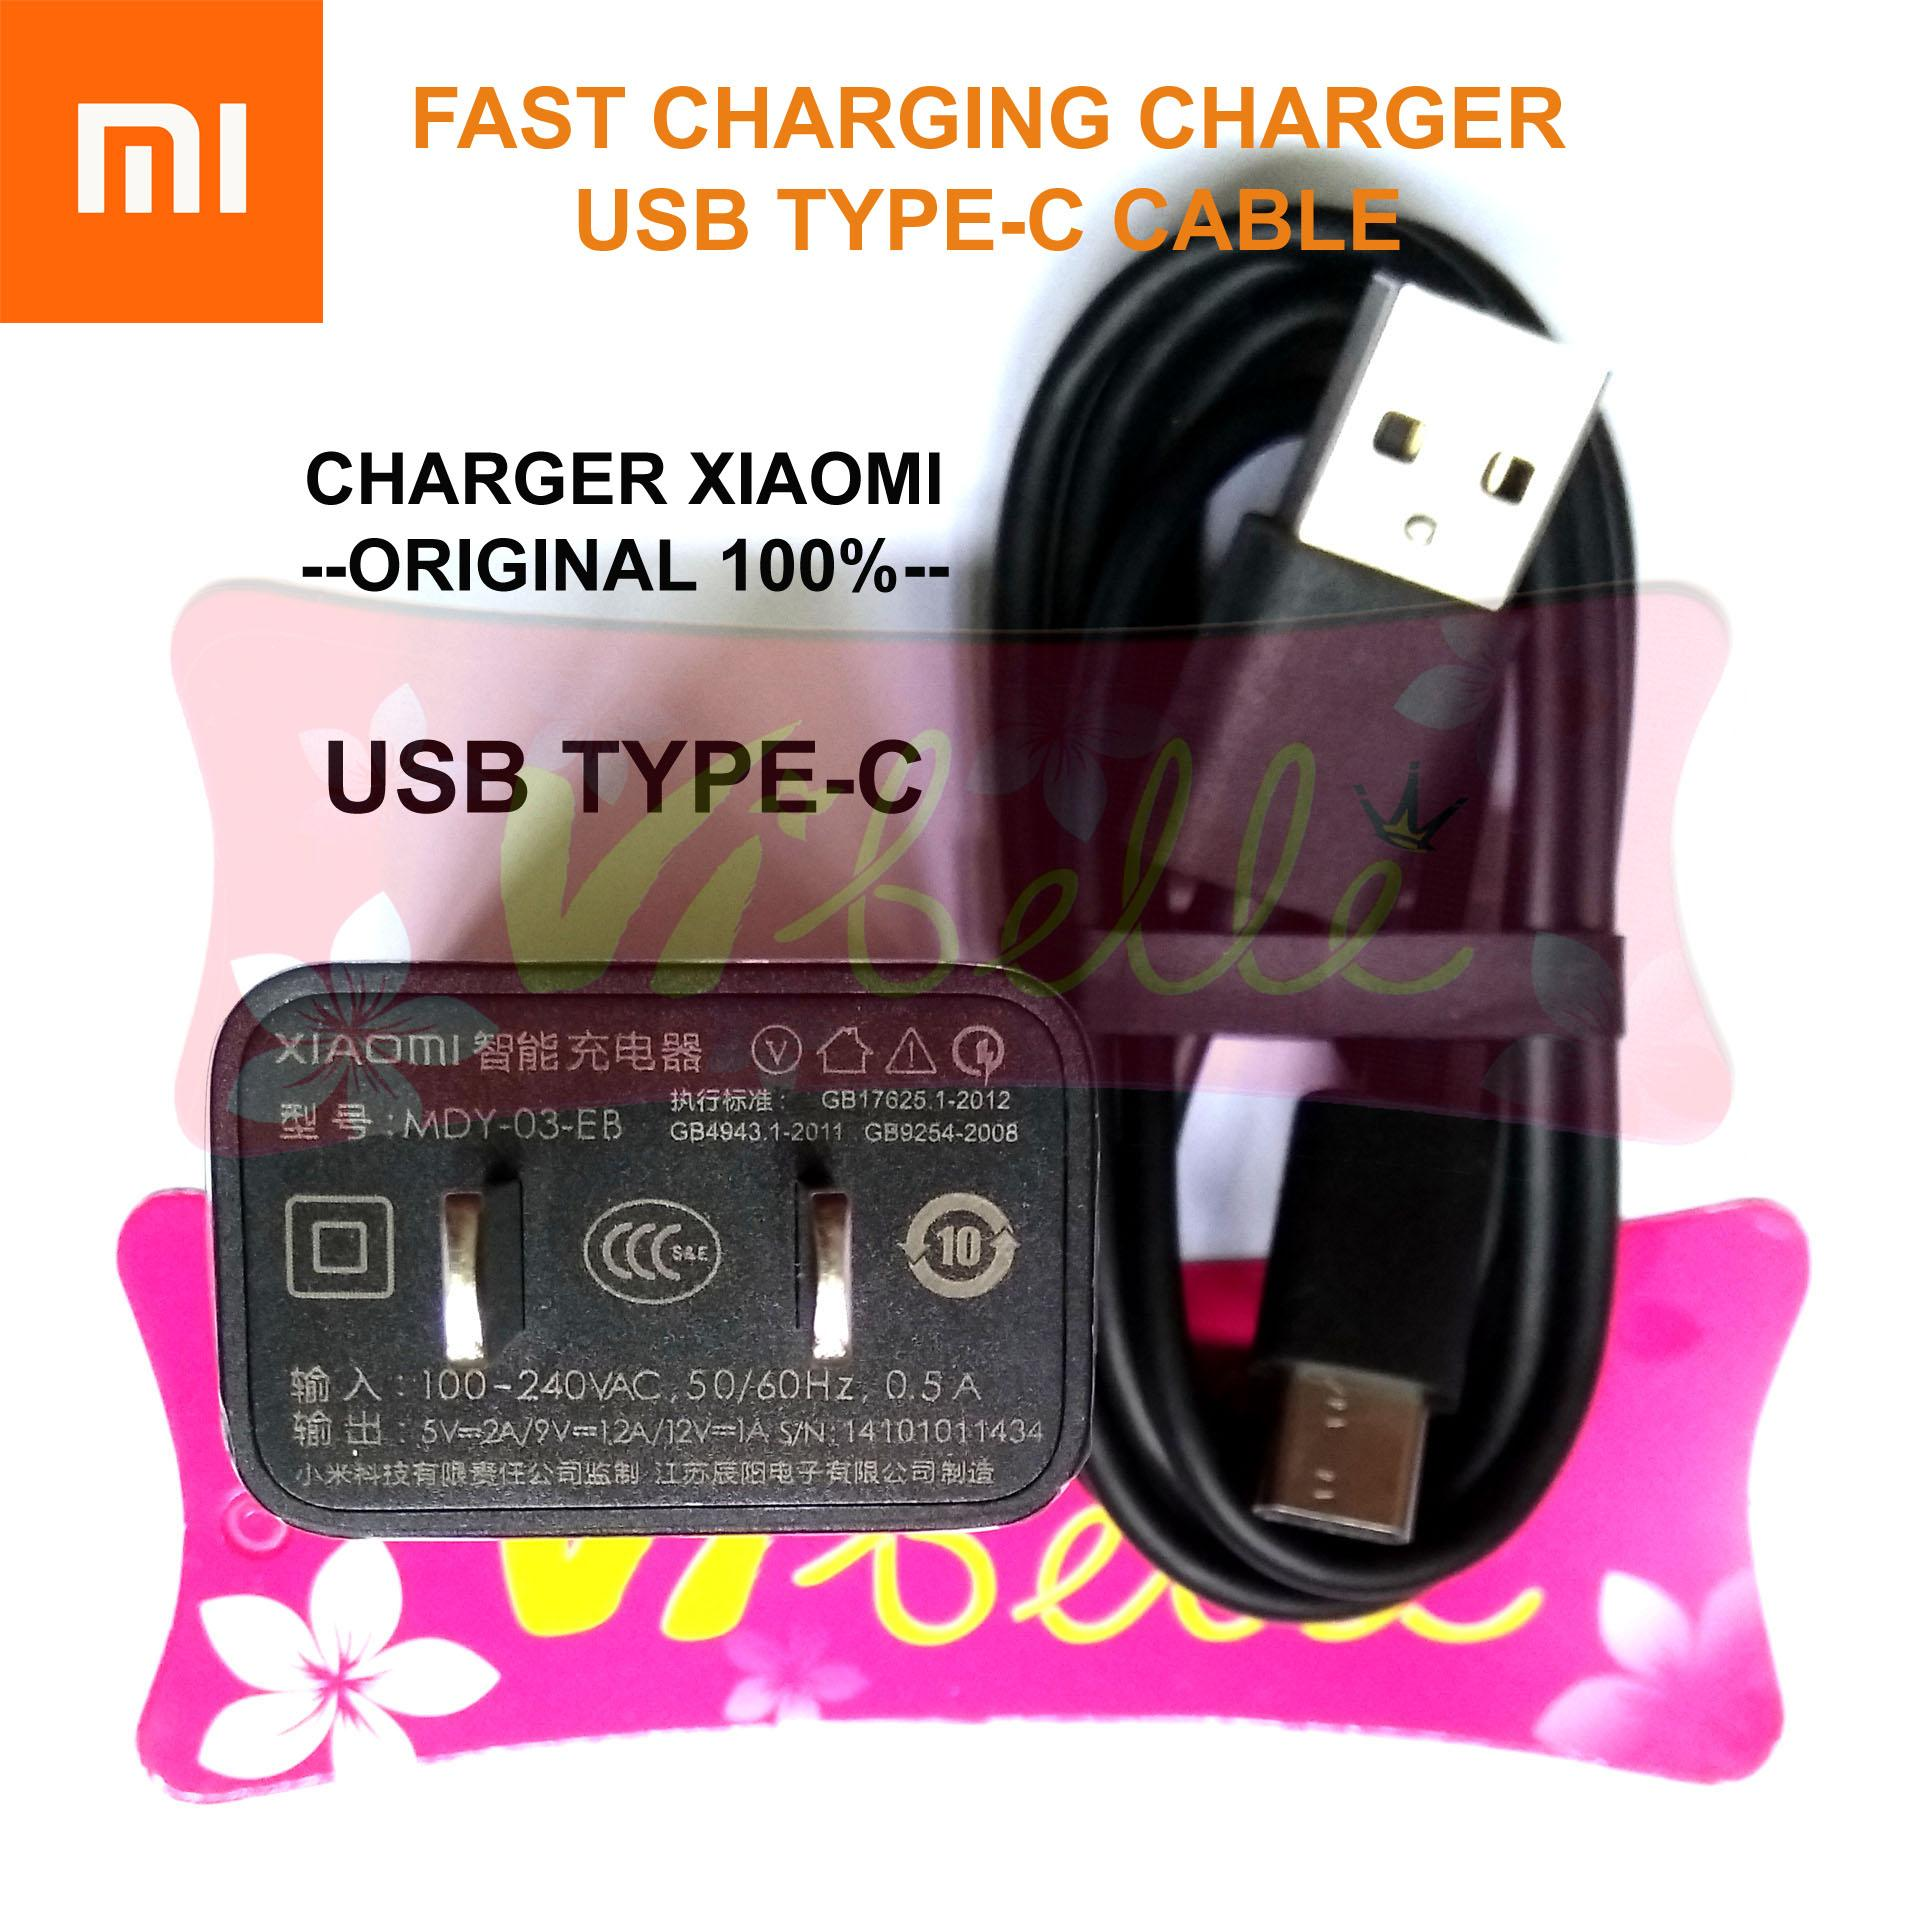 Charger Xiaomi Type C Fast Charging Kabel .